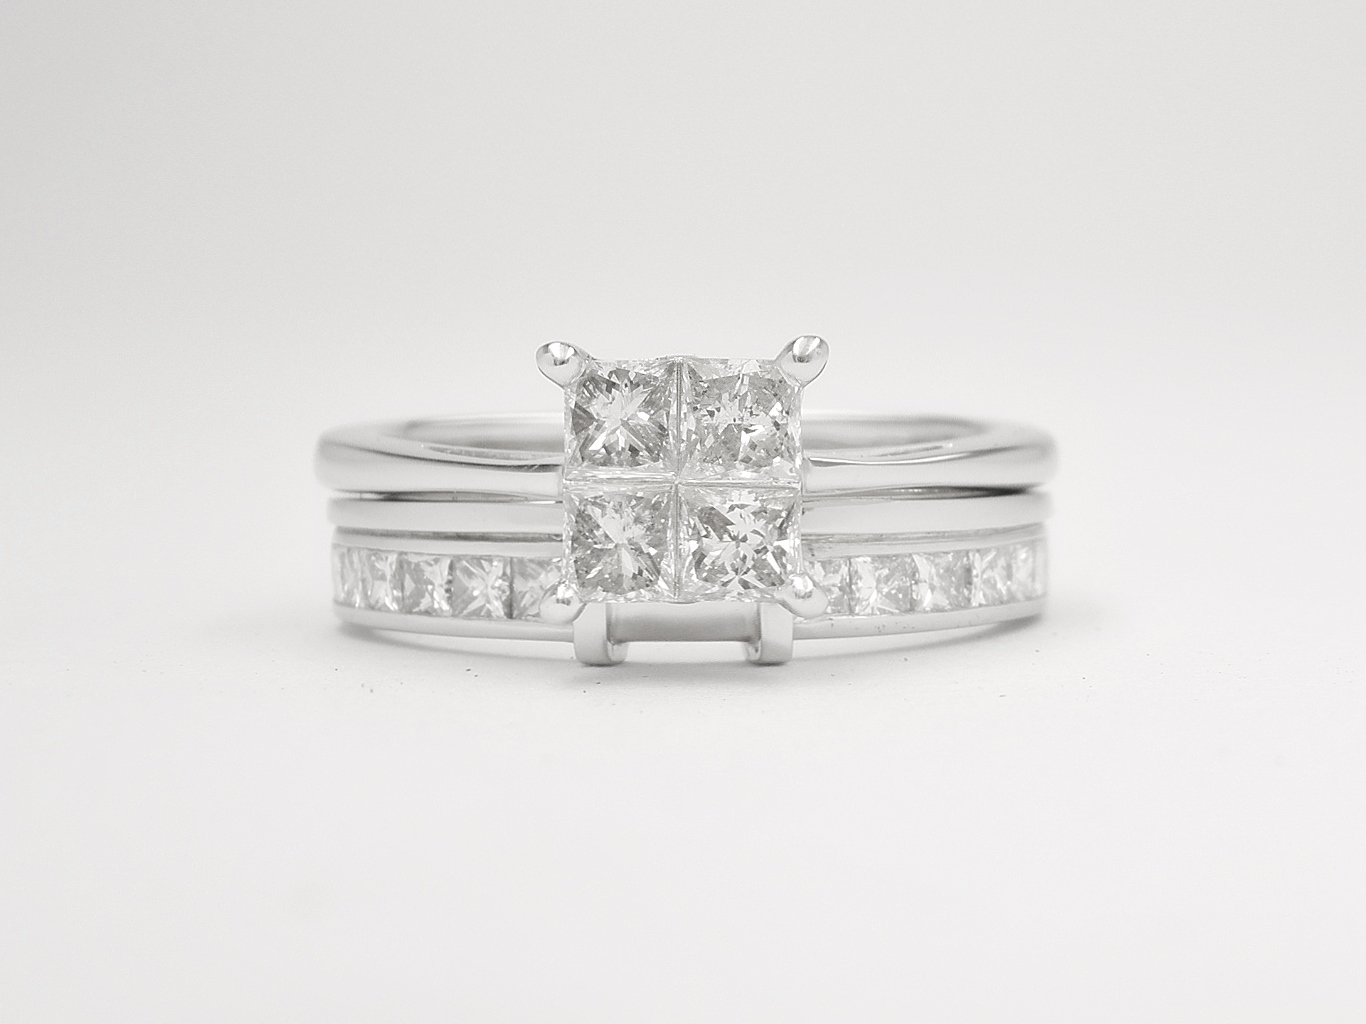 Palladium wedding ring shaped to fit 4 stone princess cut cluster engagement ring, & channel set with princess cut diamonds on either side of raised wires shaped to let in cluster.